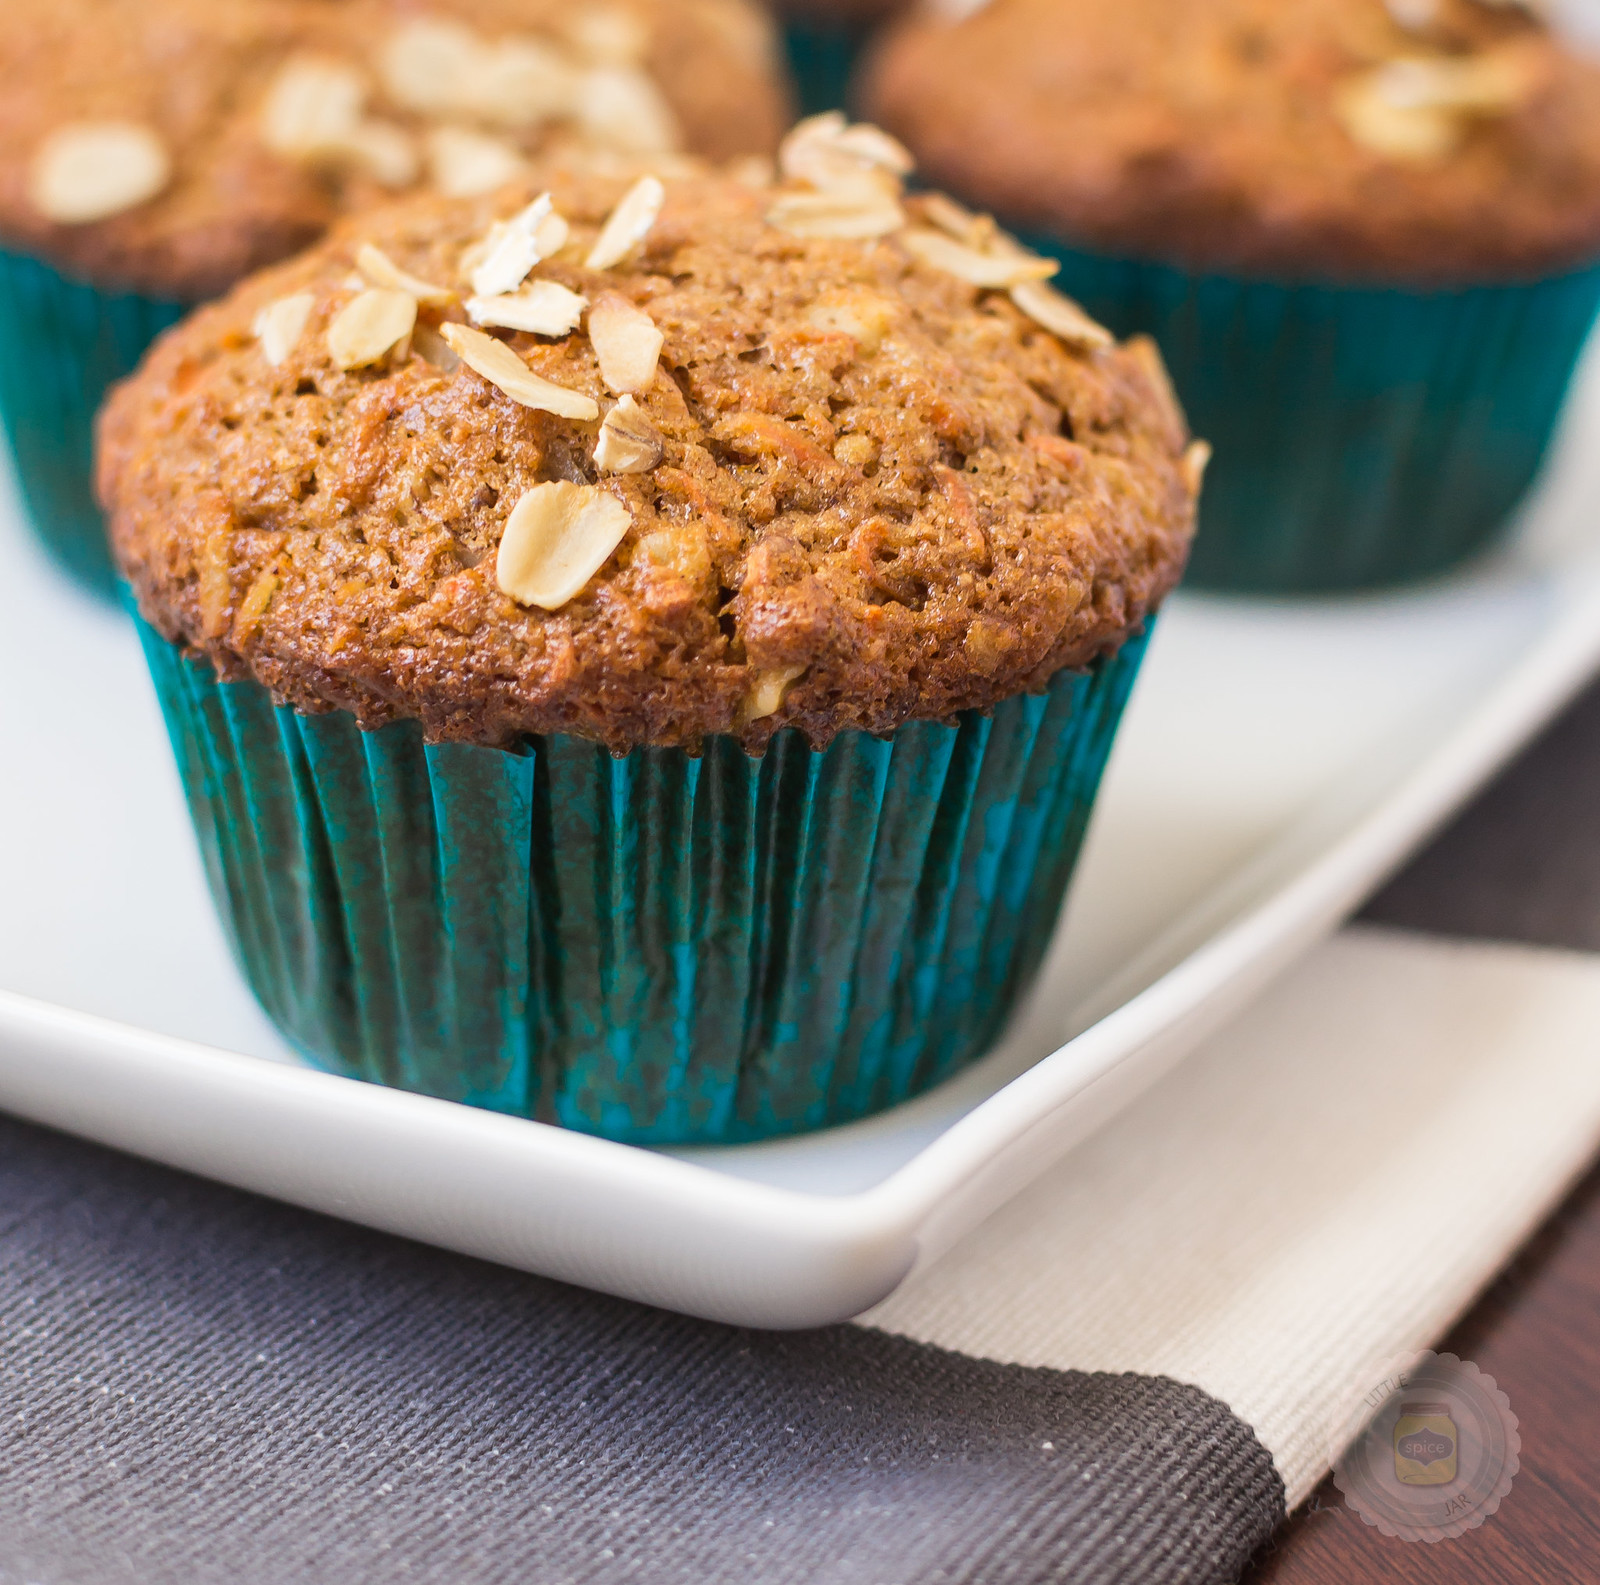 Super Moist and Healthy Carrot Cake Muffins Final Shot 2 Cropped